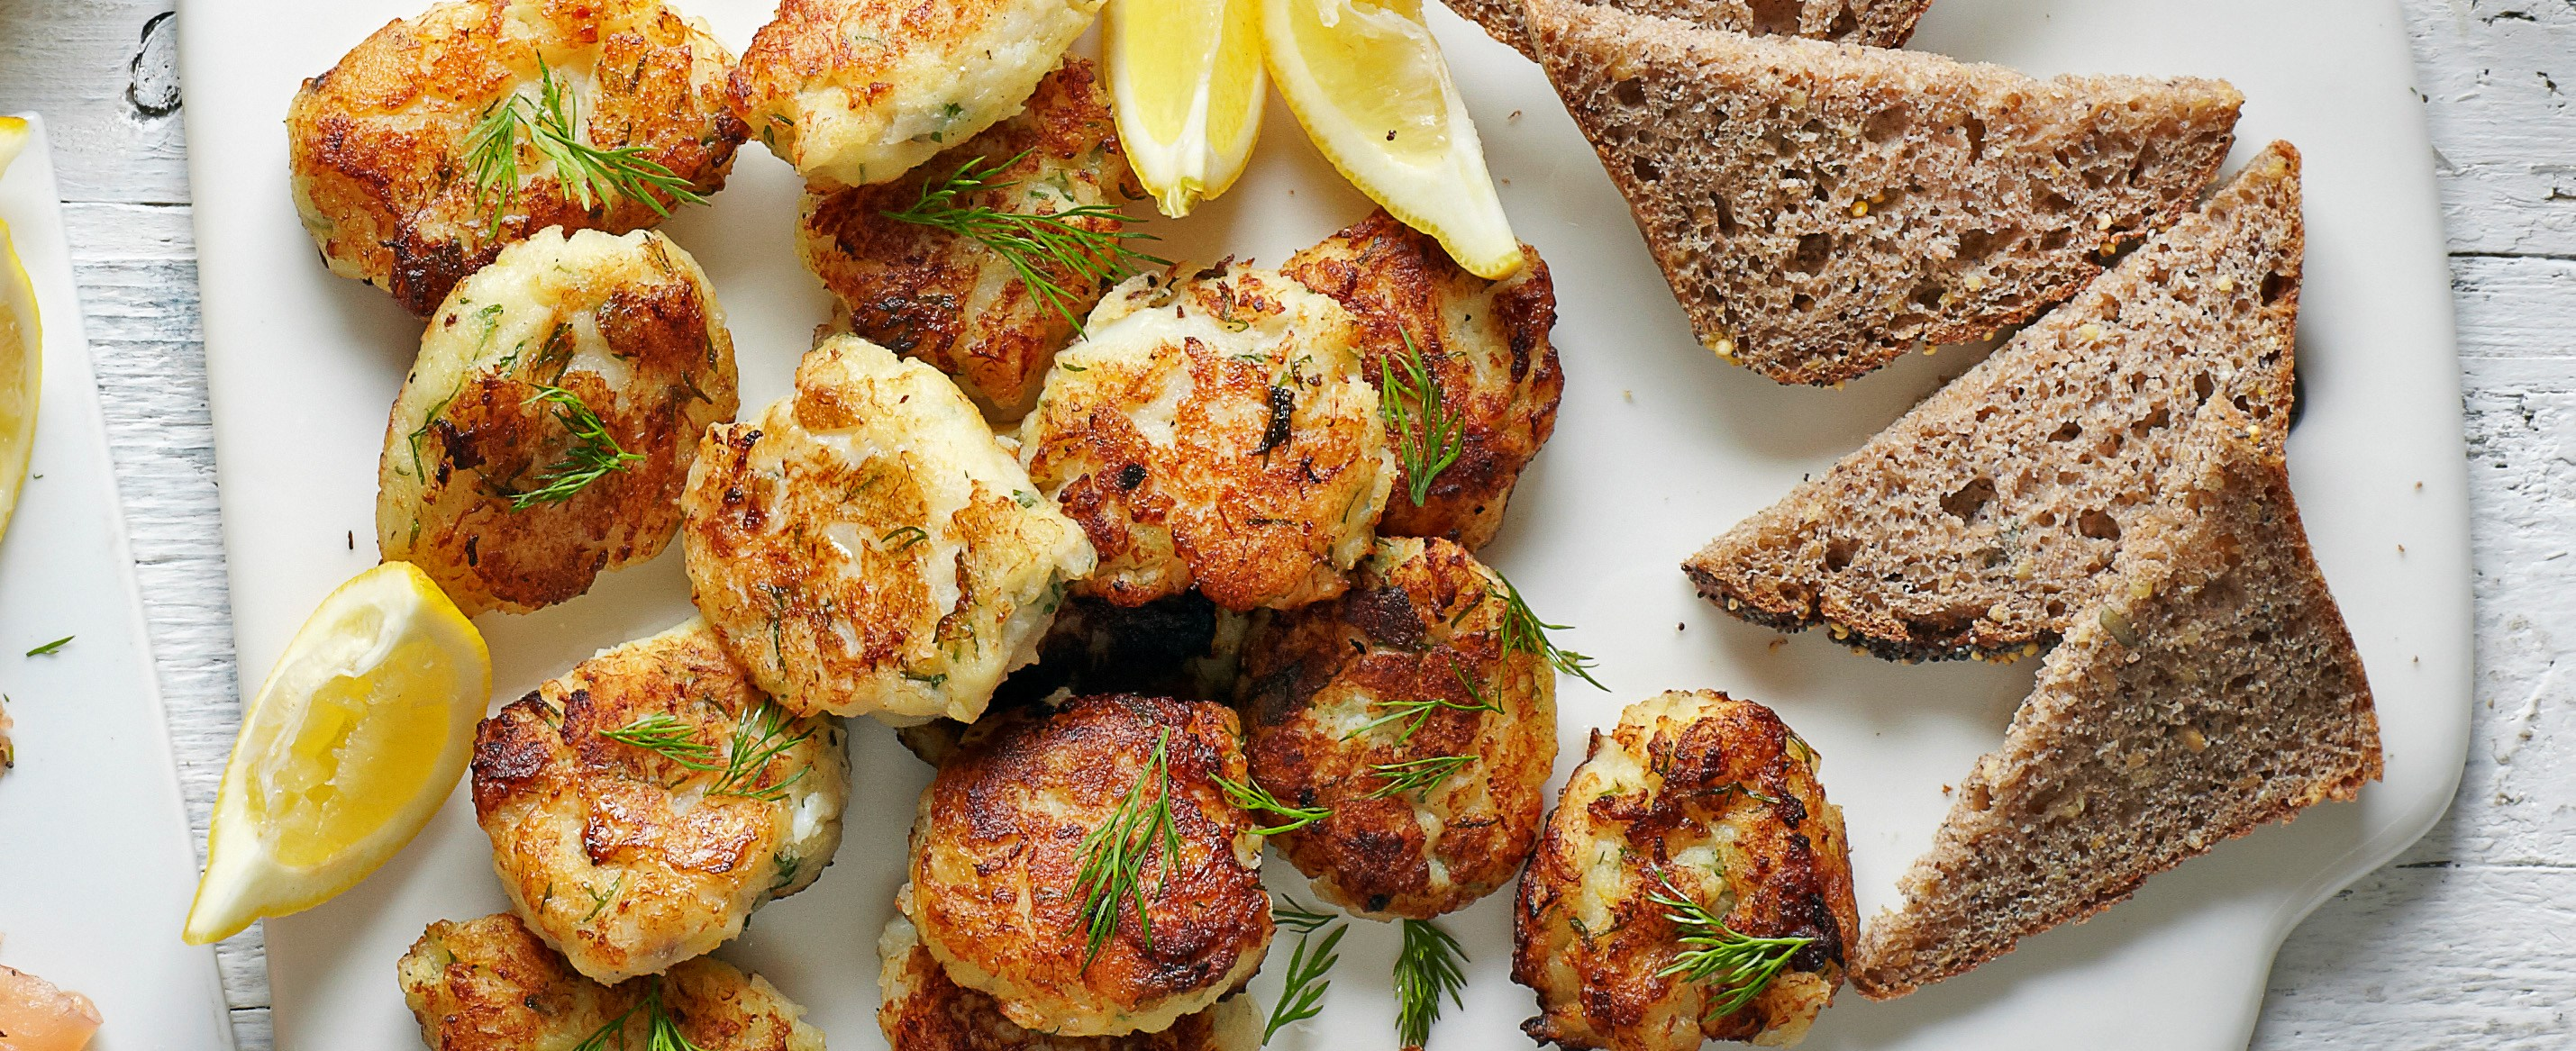 Smoked cod fritters